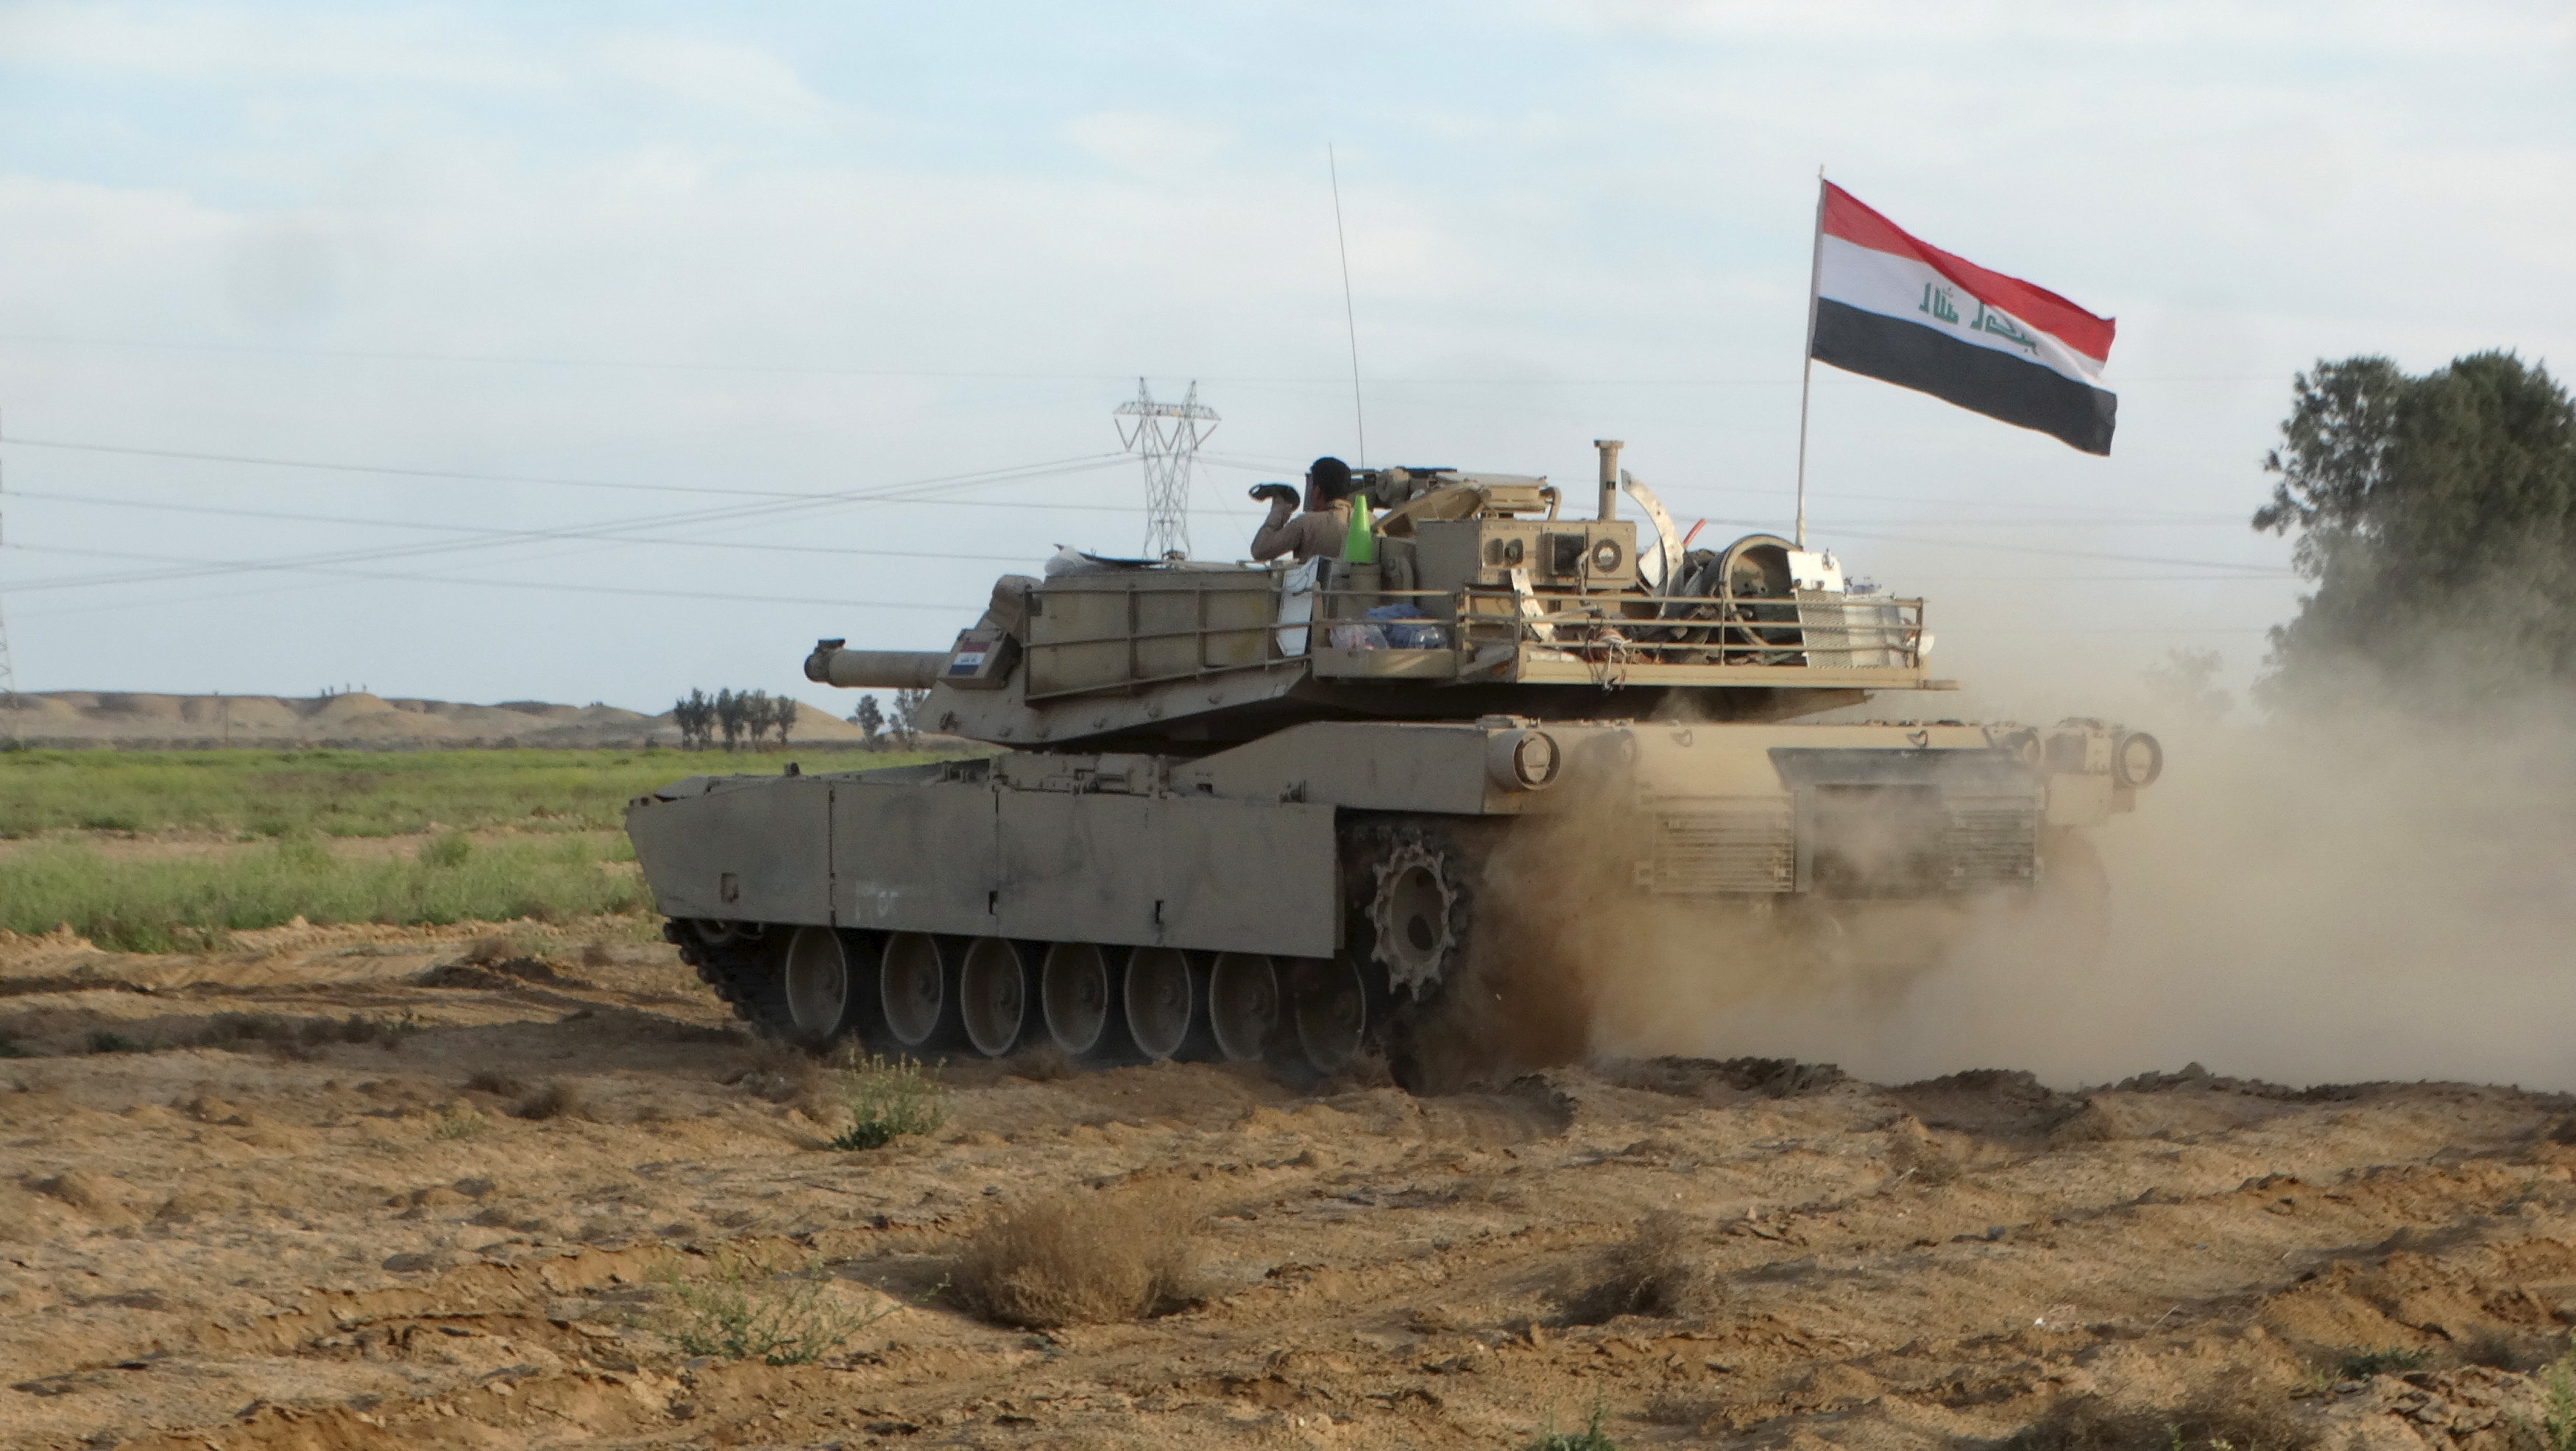 An Iraqi army tank is pictured during a military operation toward the town of Hit, in west of Ramadi, March 8, 2016. Picture taken March 8, 2016. REUTERS/Stringer - RTS9Y53